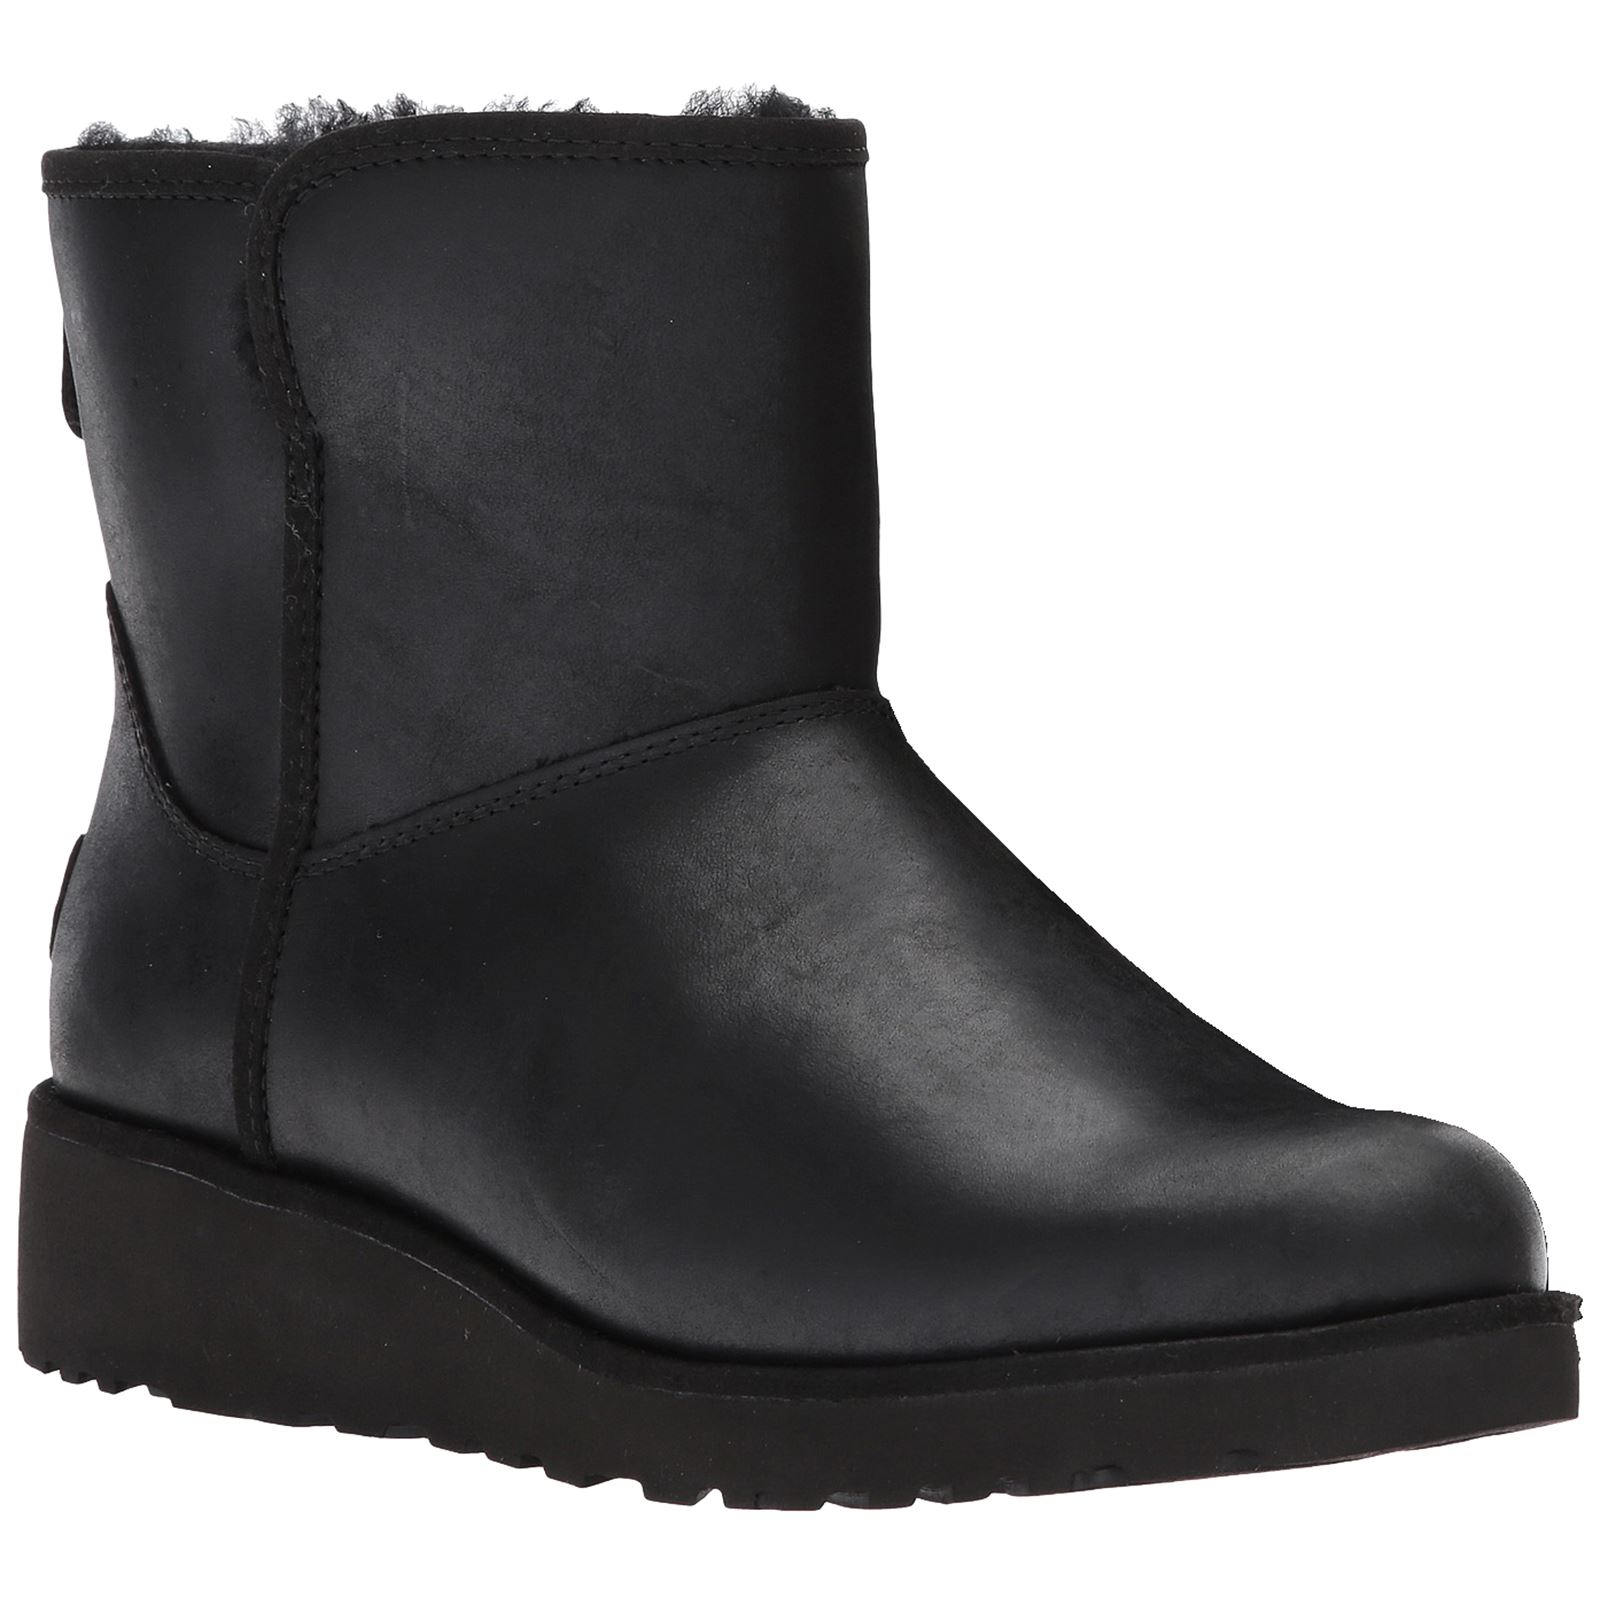 Ugg Australia Ankle About Boots Kristin Womens Black Details Leather AqFwZ1xRT